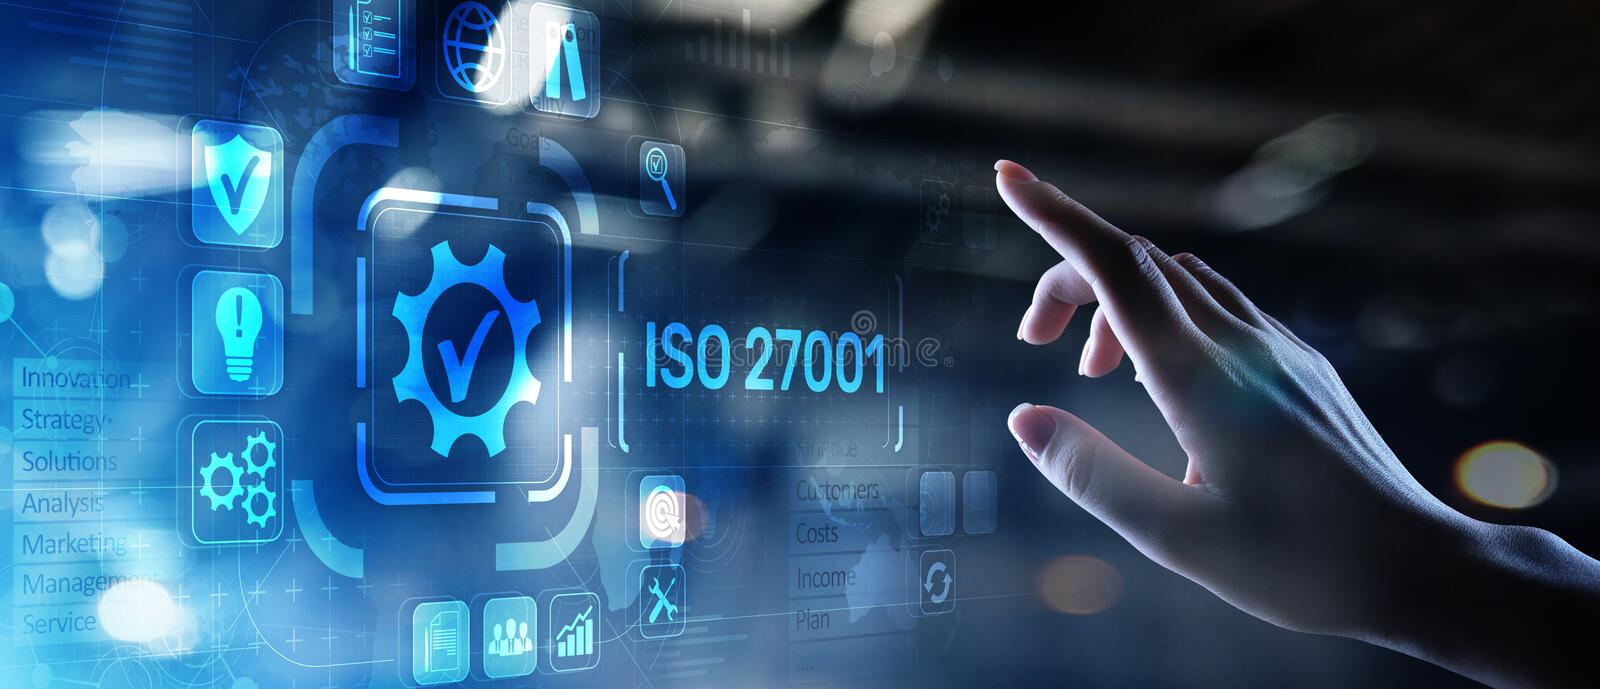 ISO standards quality control assurance warranty business technology concept. ISO standards quality control assurance warranty business technology concept stock photos